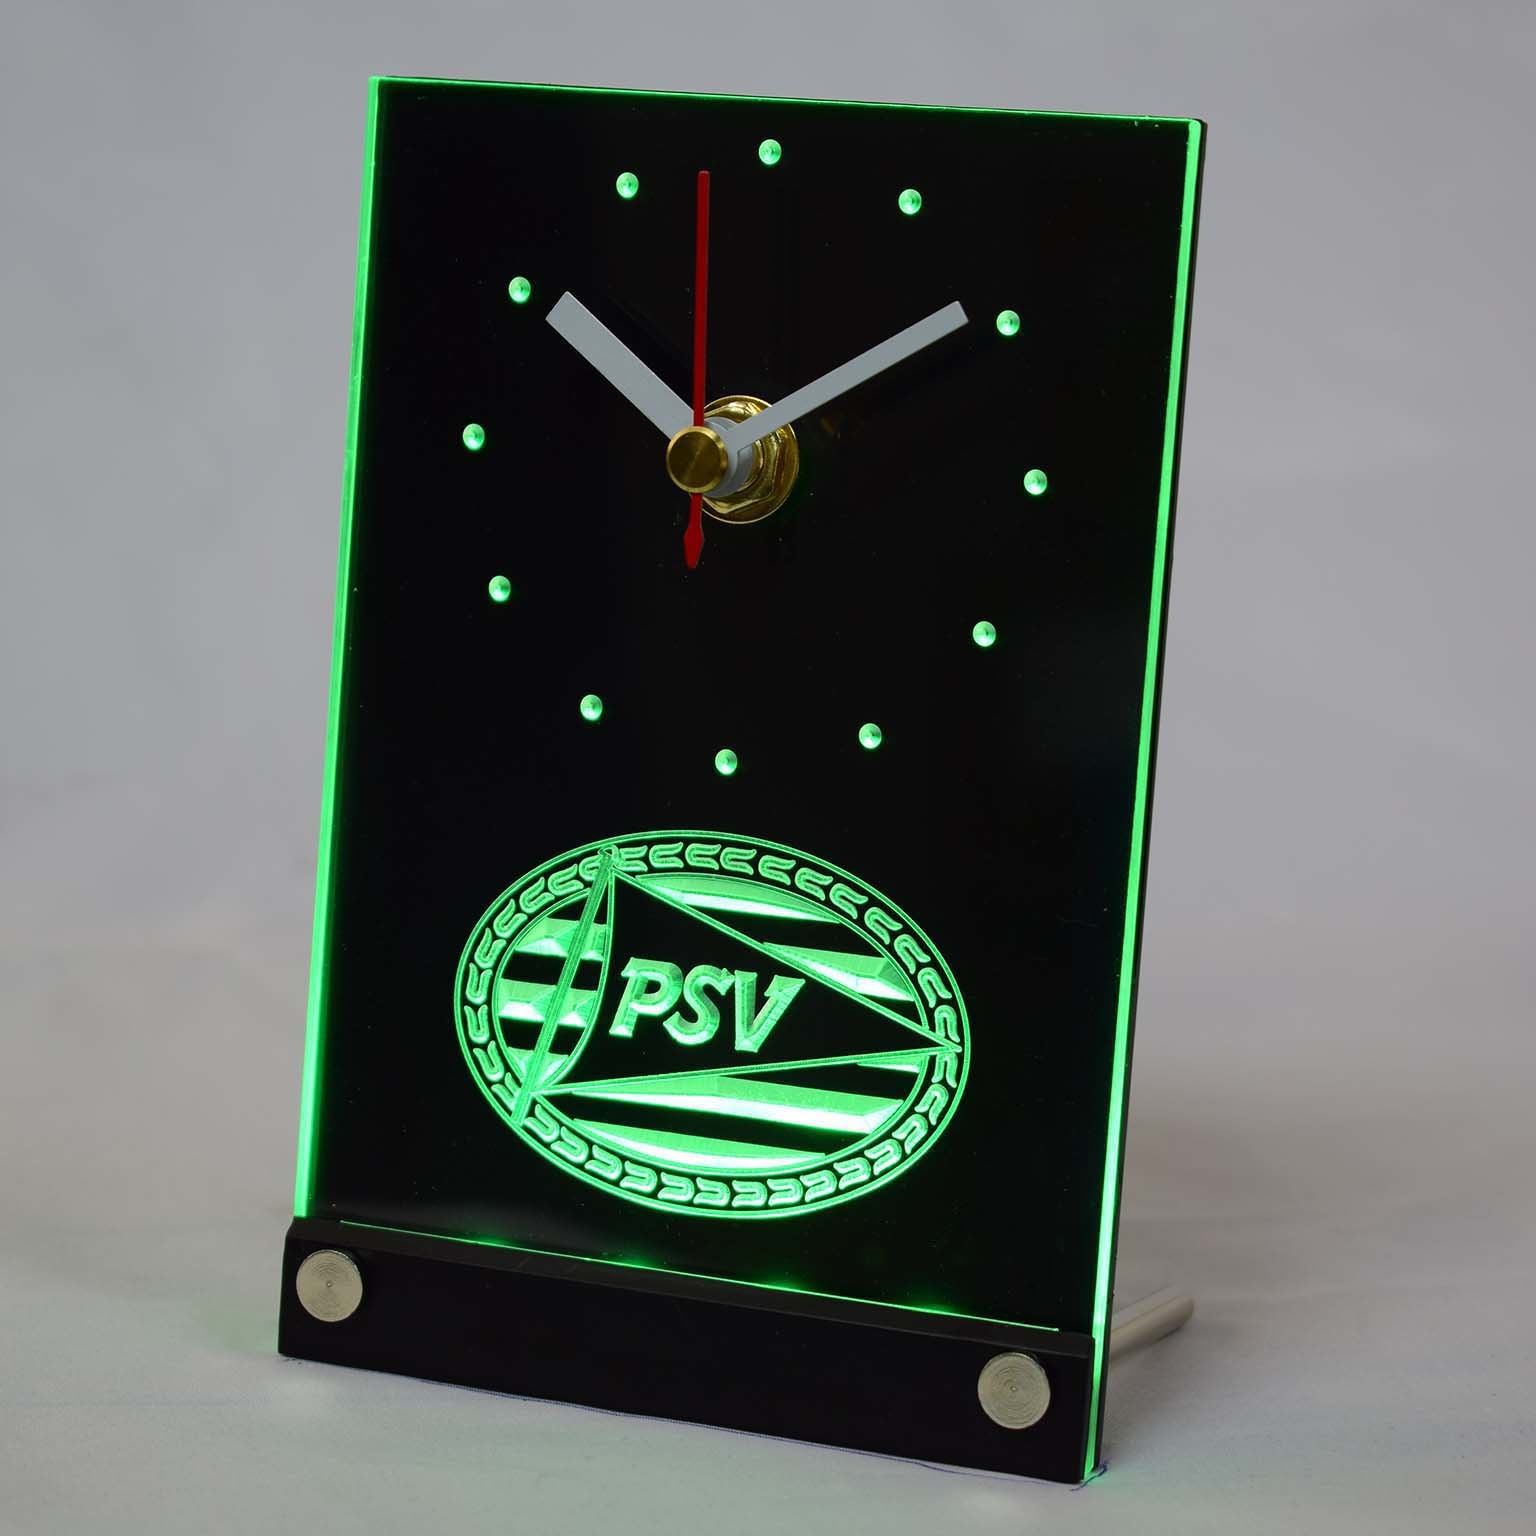 Tnc1010 PSV Eindhoven Sport Vereniging Dutch Eredivisie 3D LED Table Desk Clock